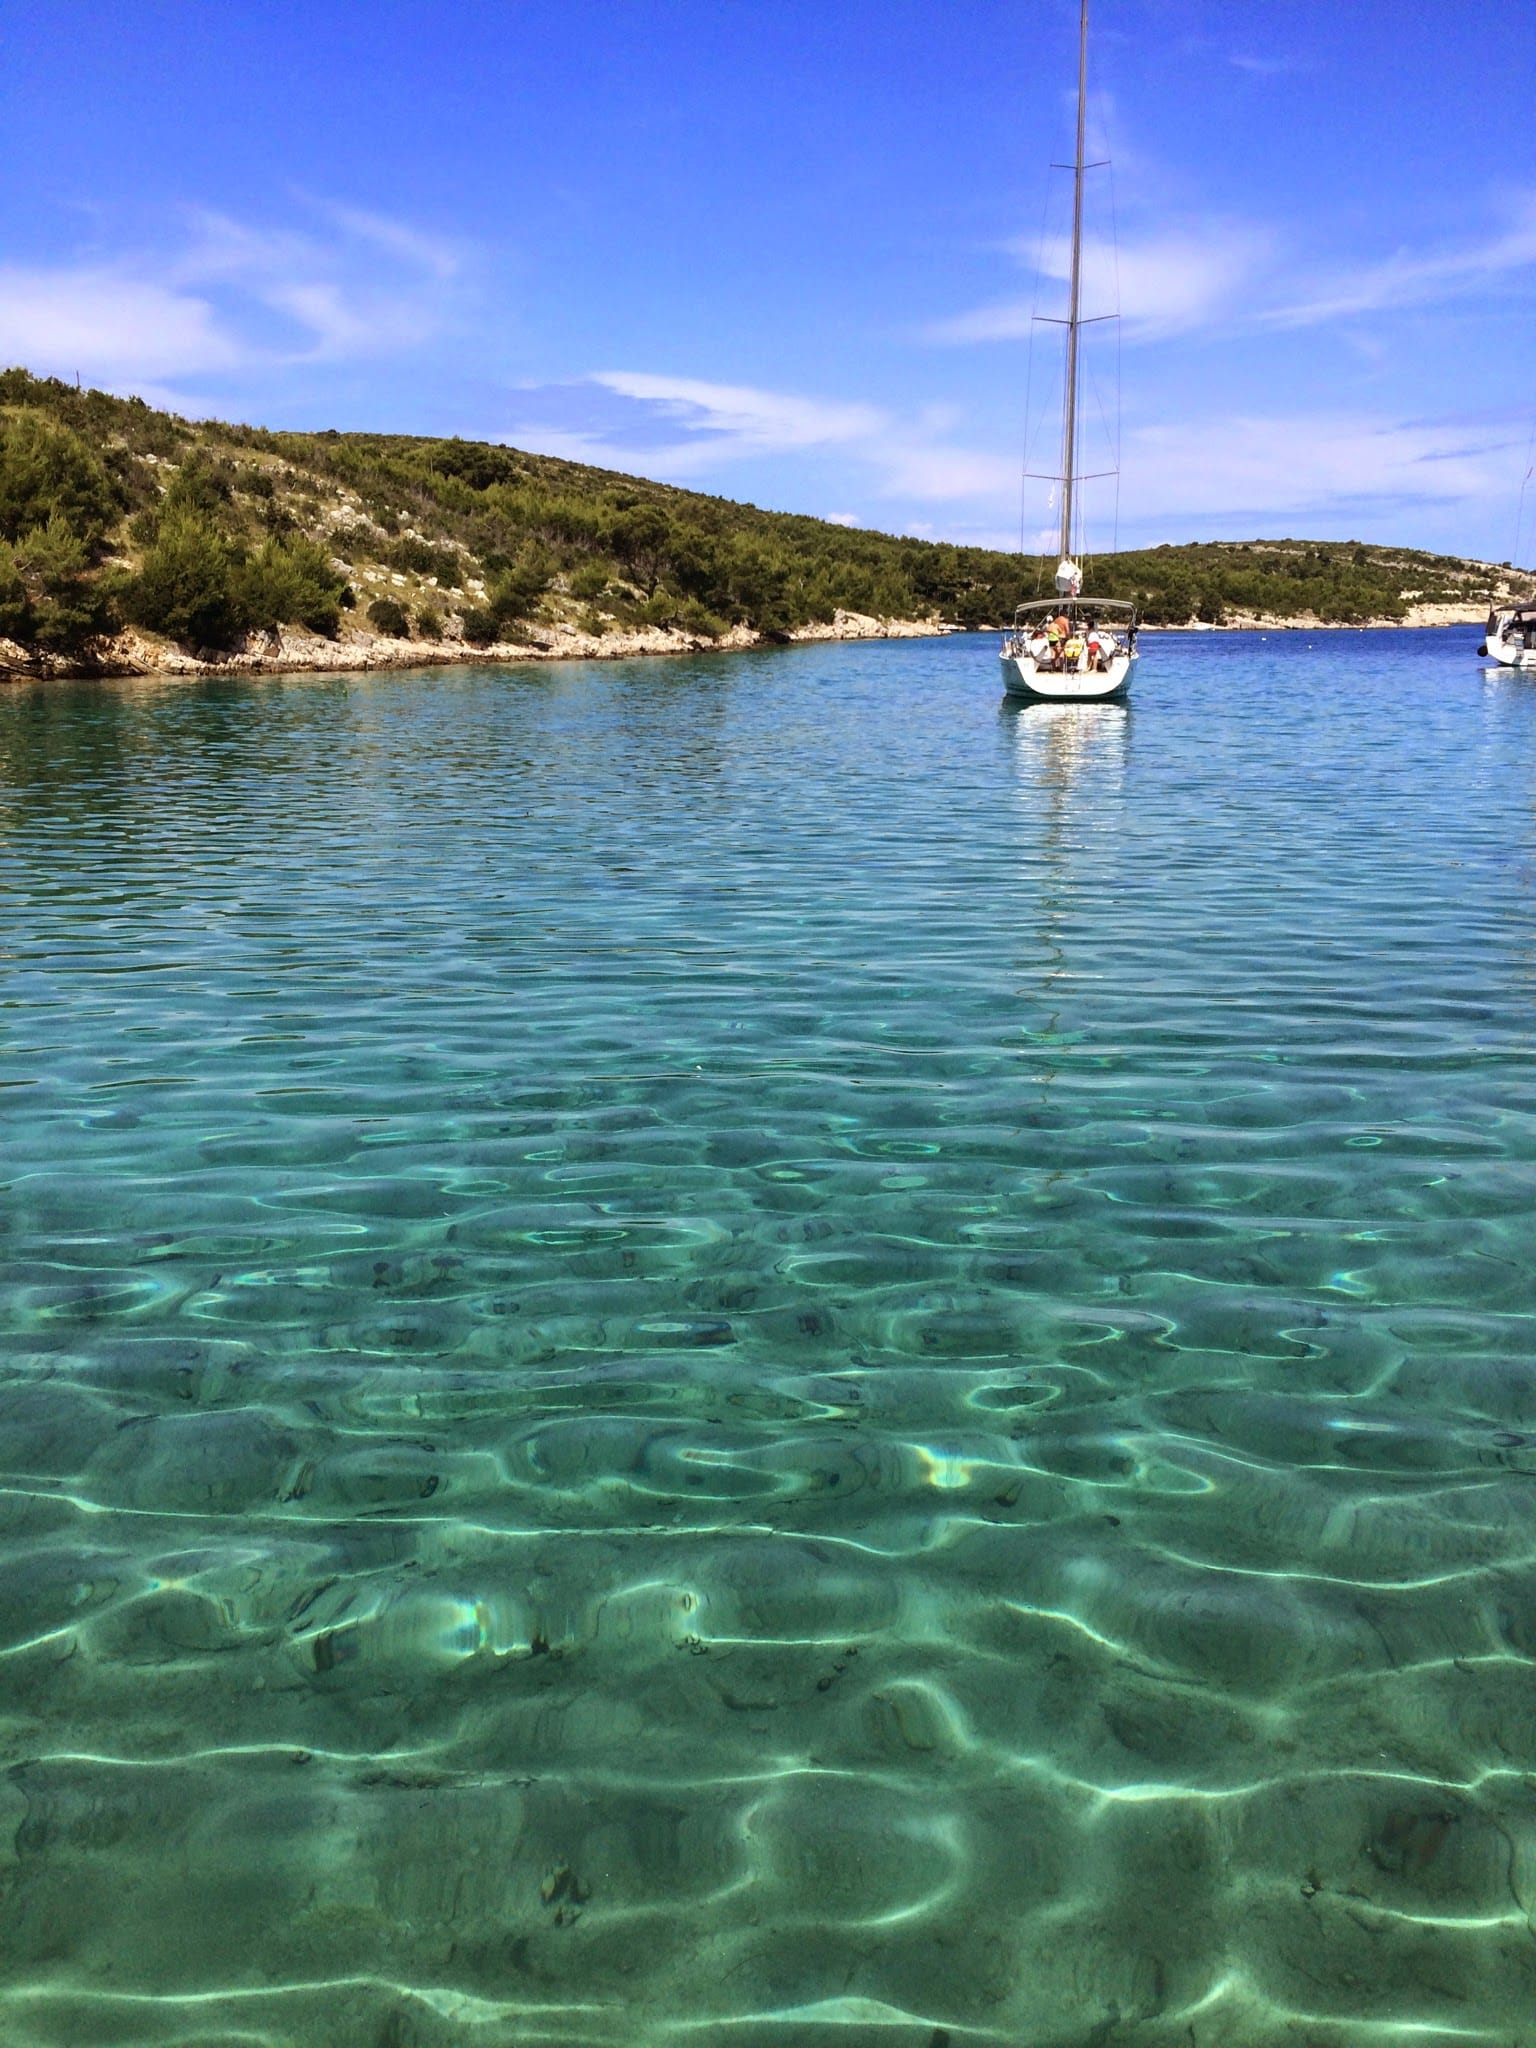 Where to go on holiday - Croatia